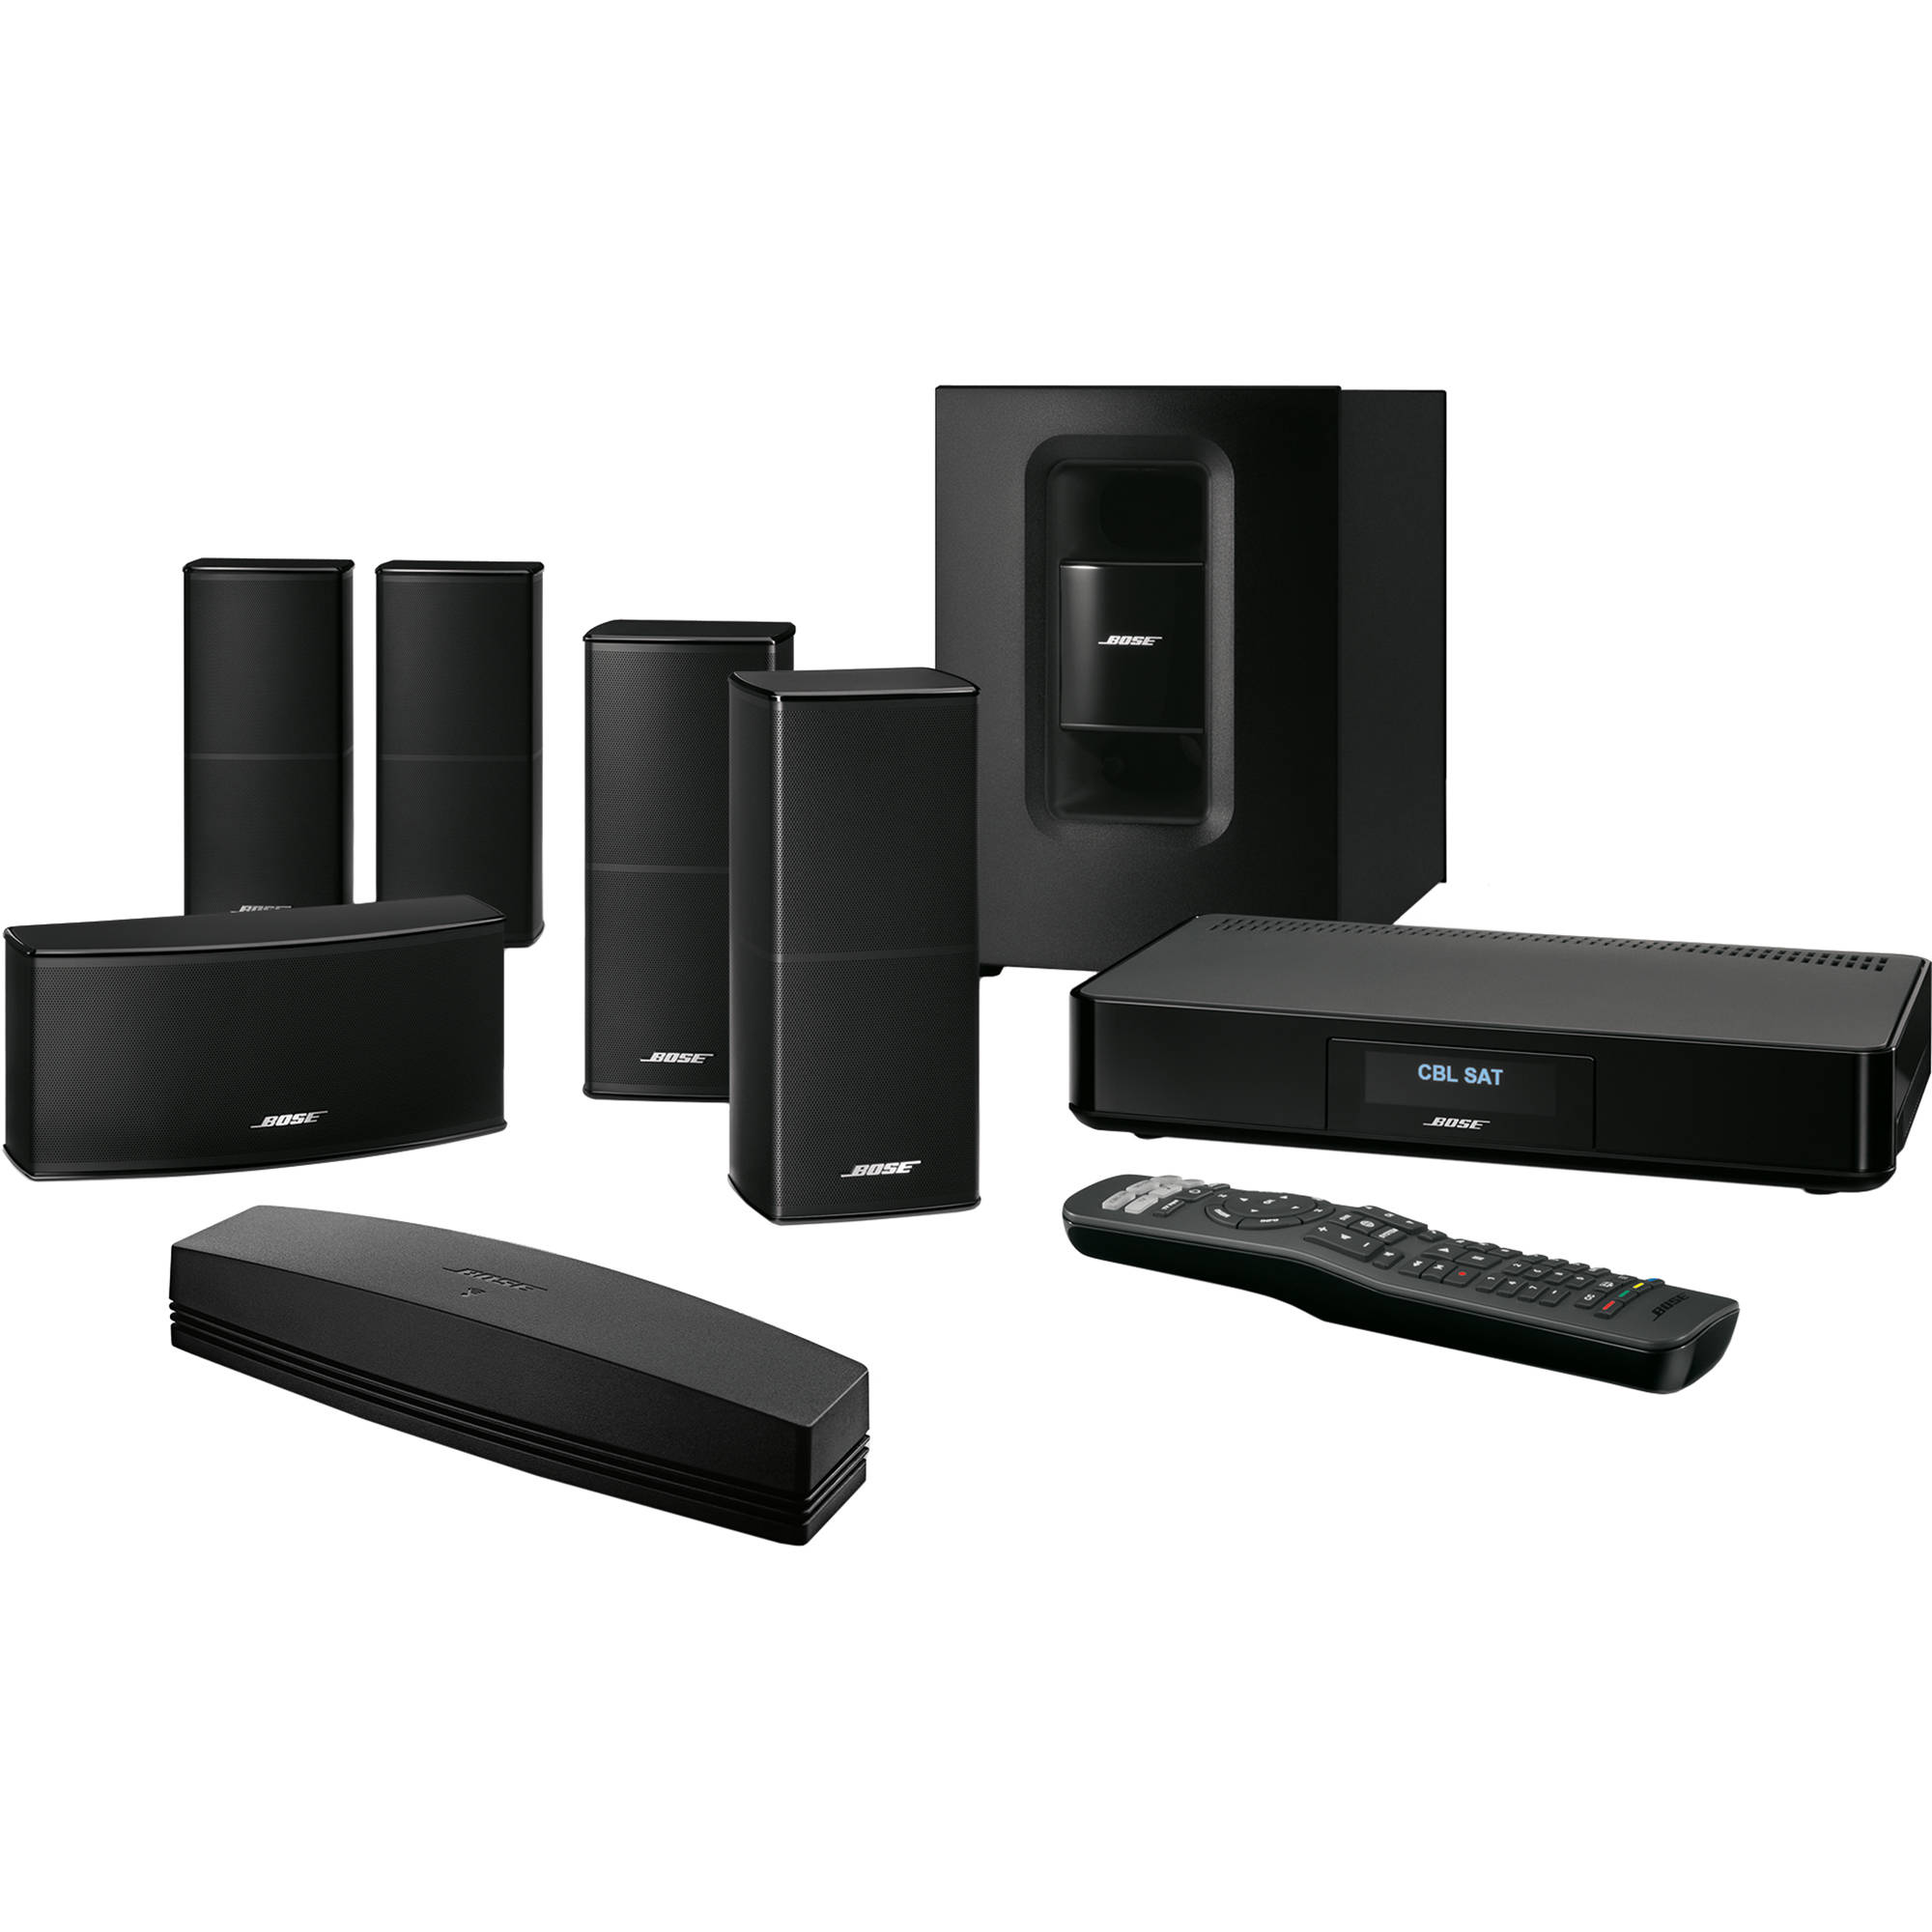 a9a8e77d10f0 Bose SoundTouch Home Theater System 520 120 130